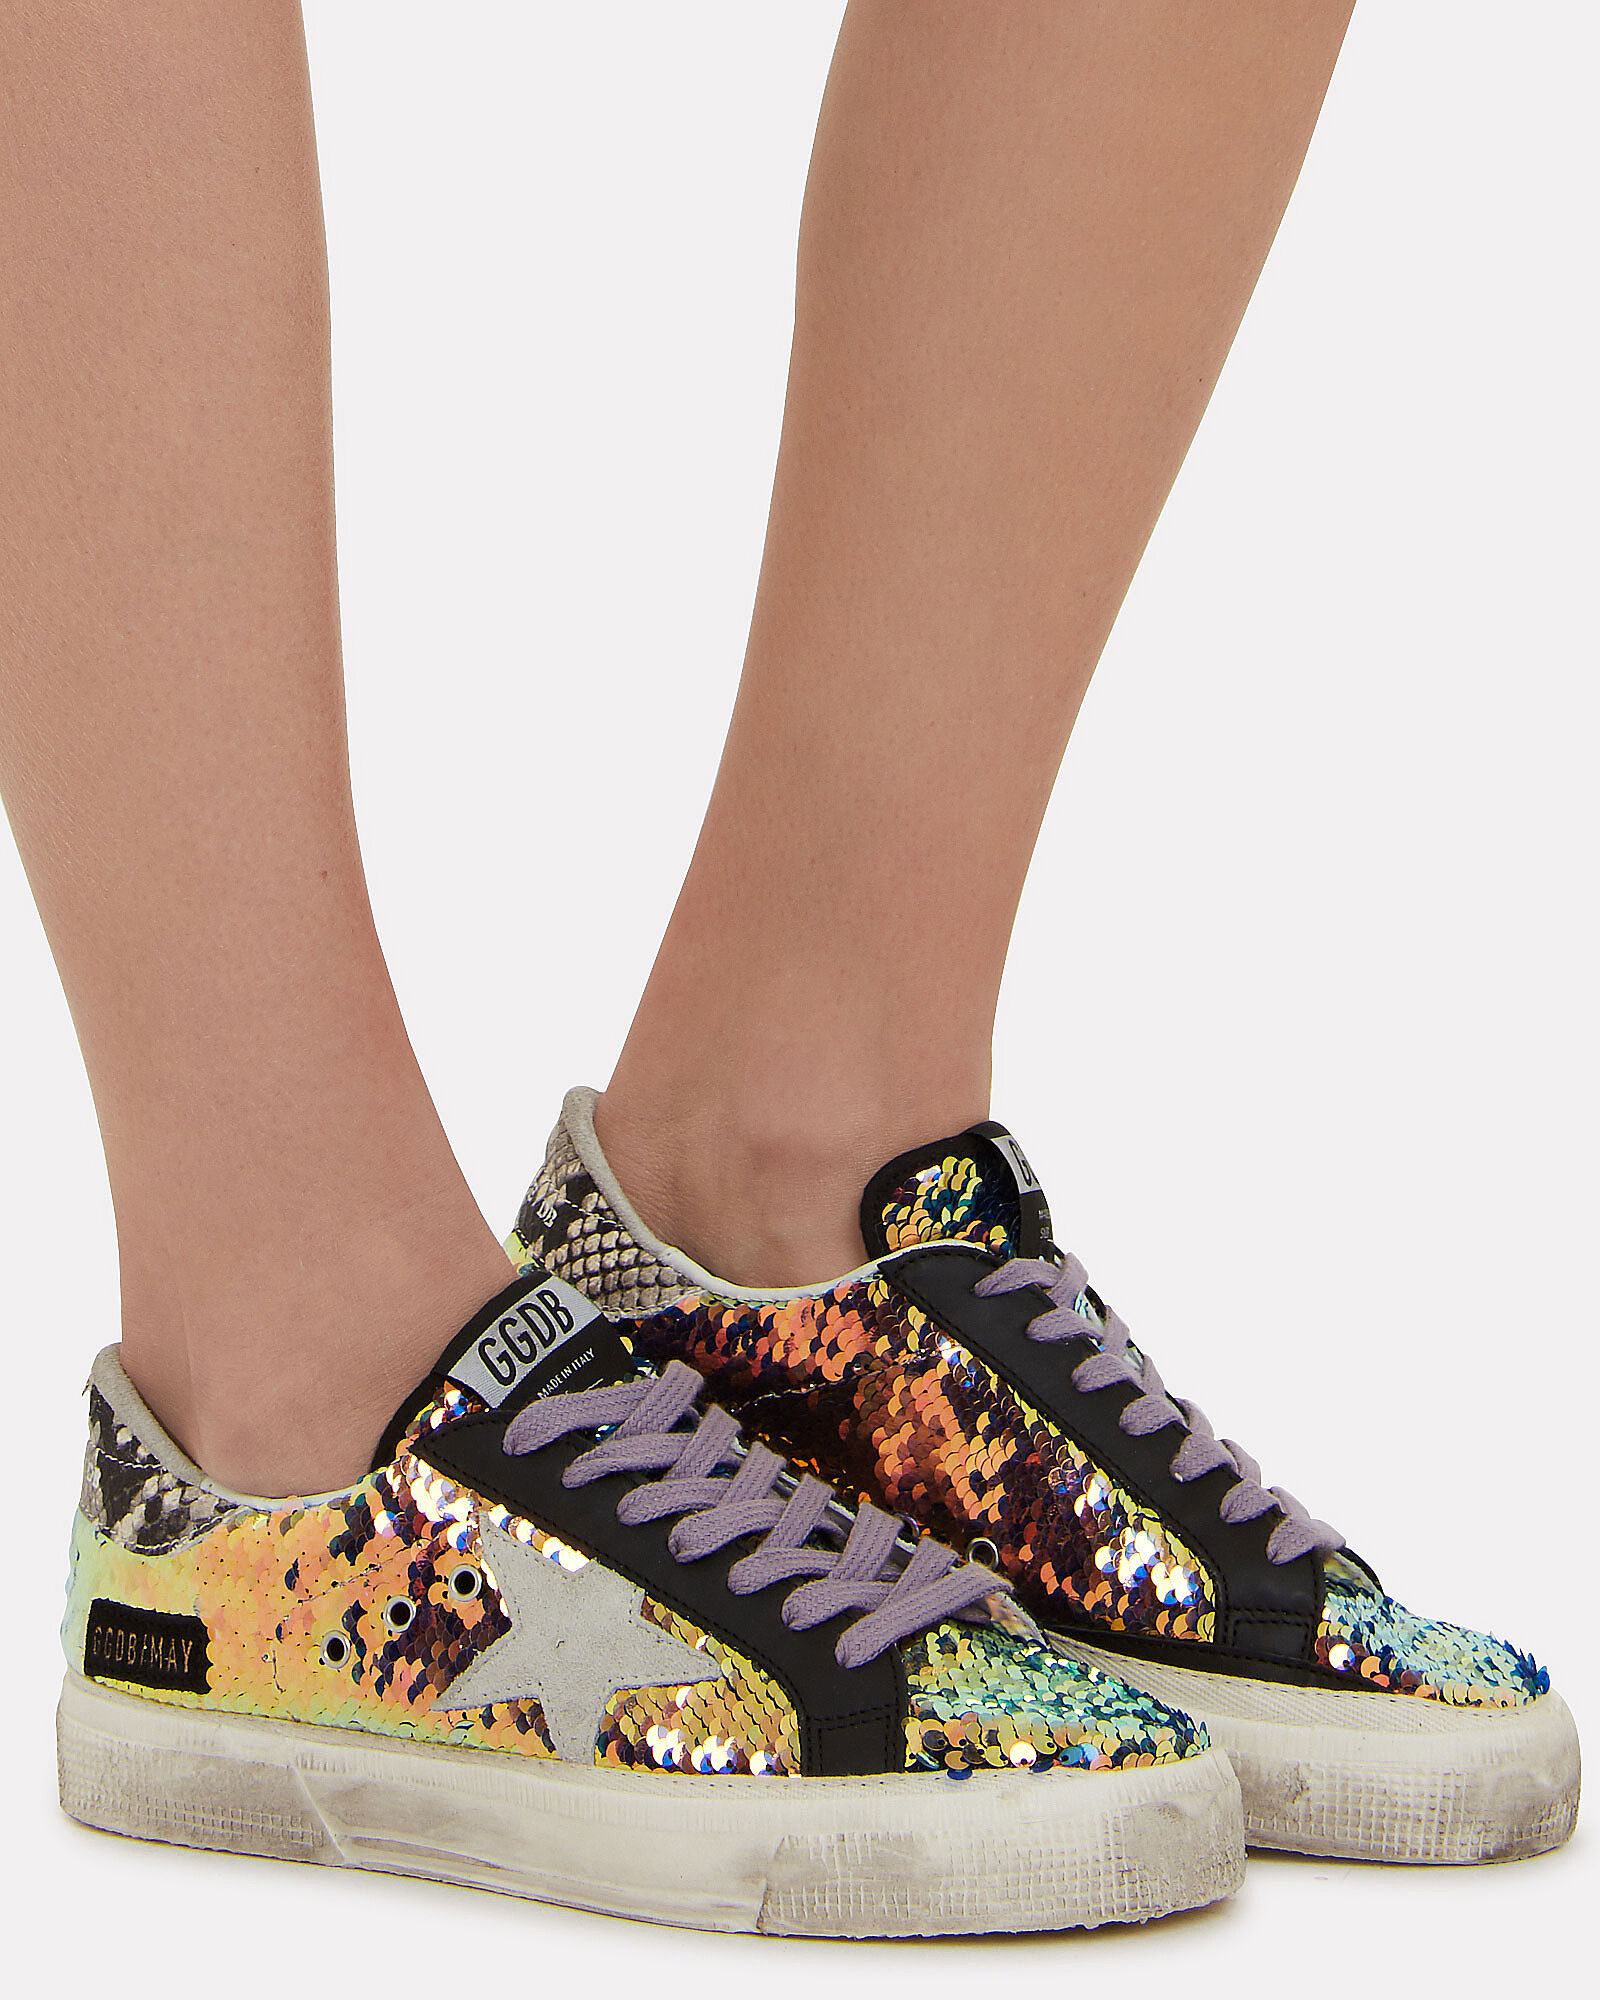 May Ice Star Sequin Sneakers, RAINBOW SEQUIN/WHITE, hi-res